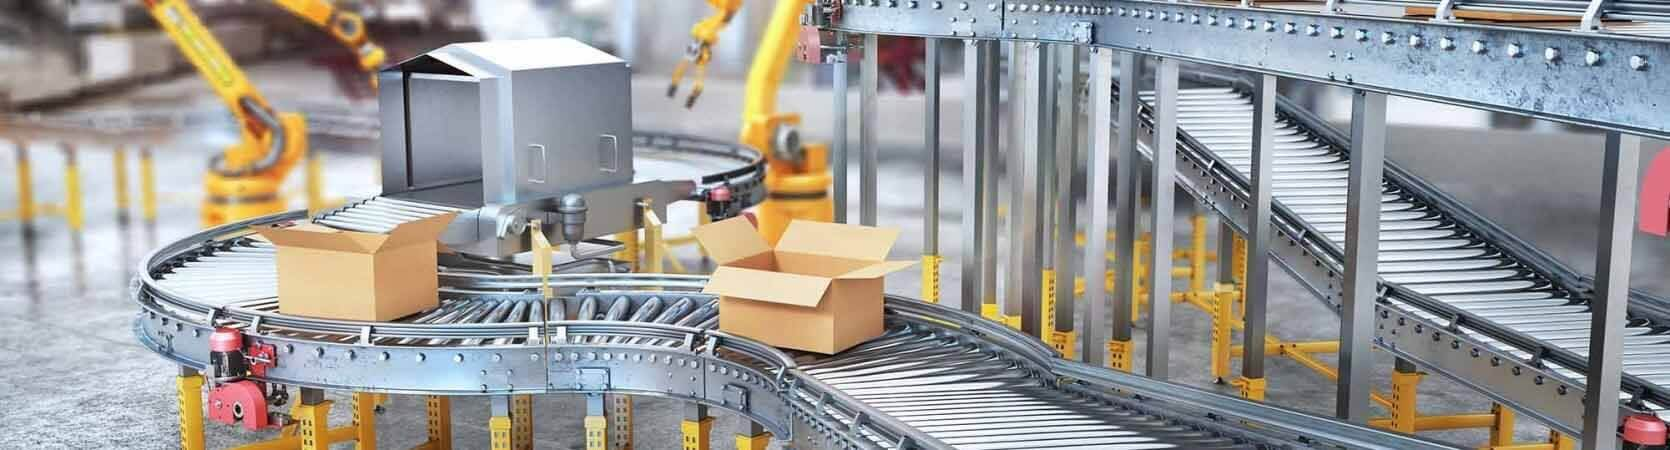 A mechanized system that benefited from custom automation solutions